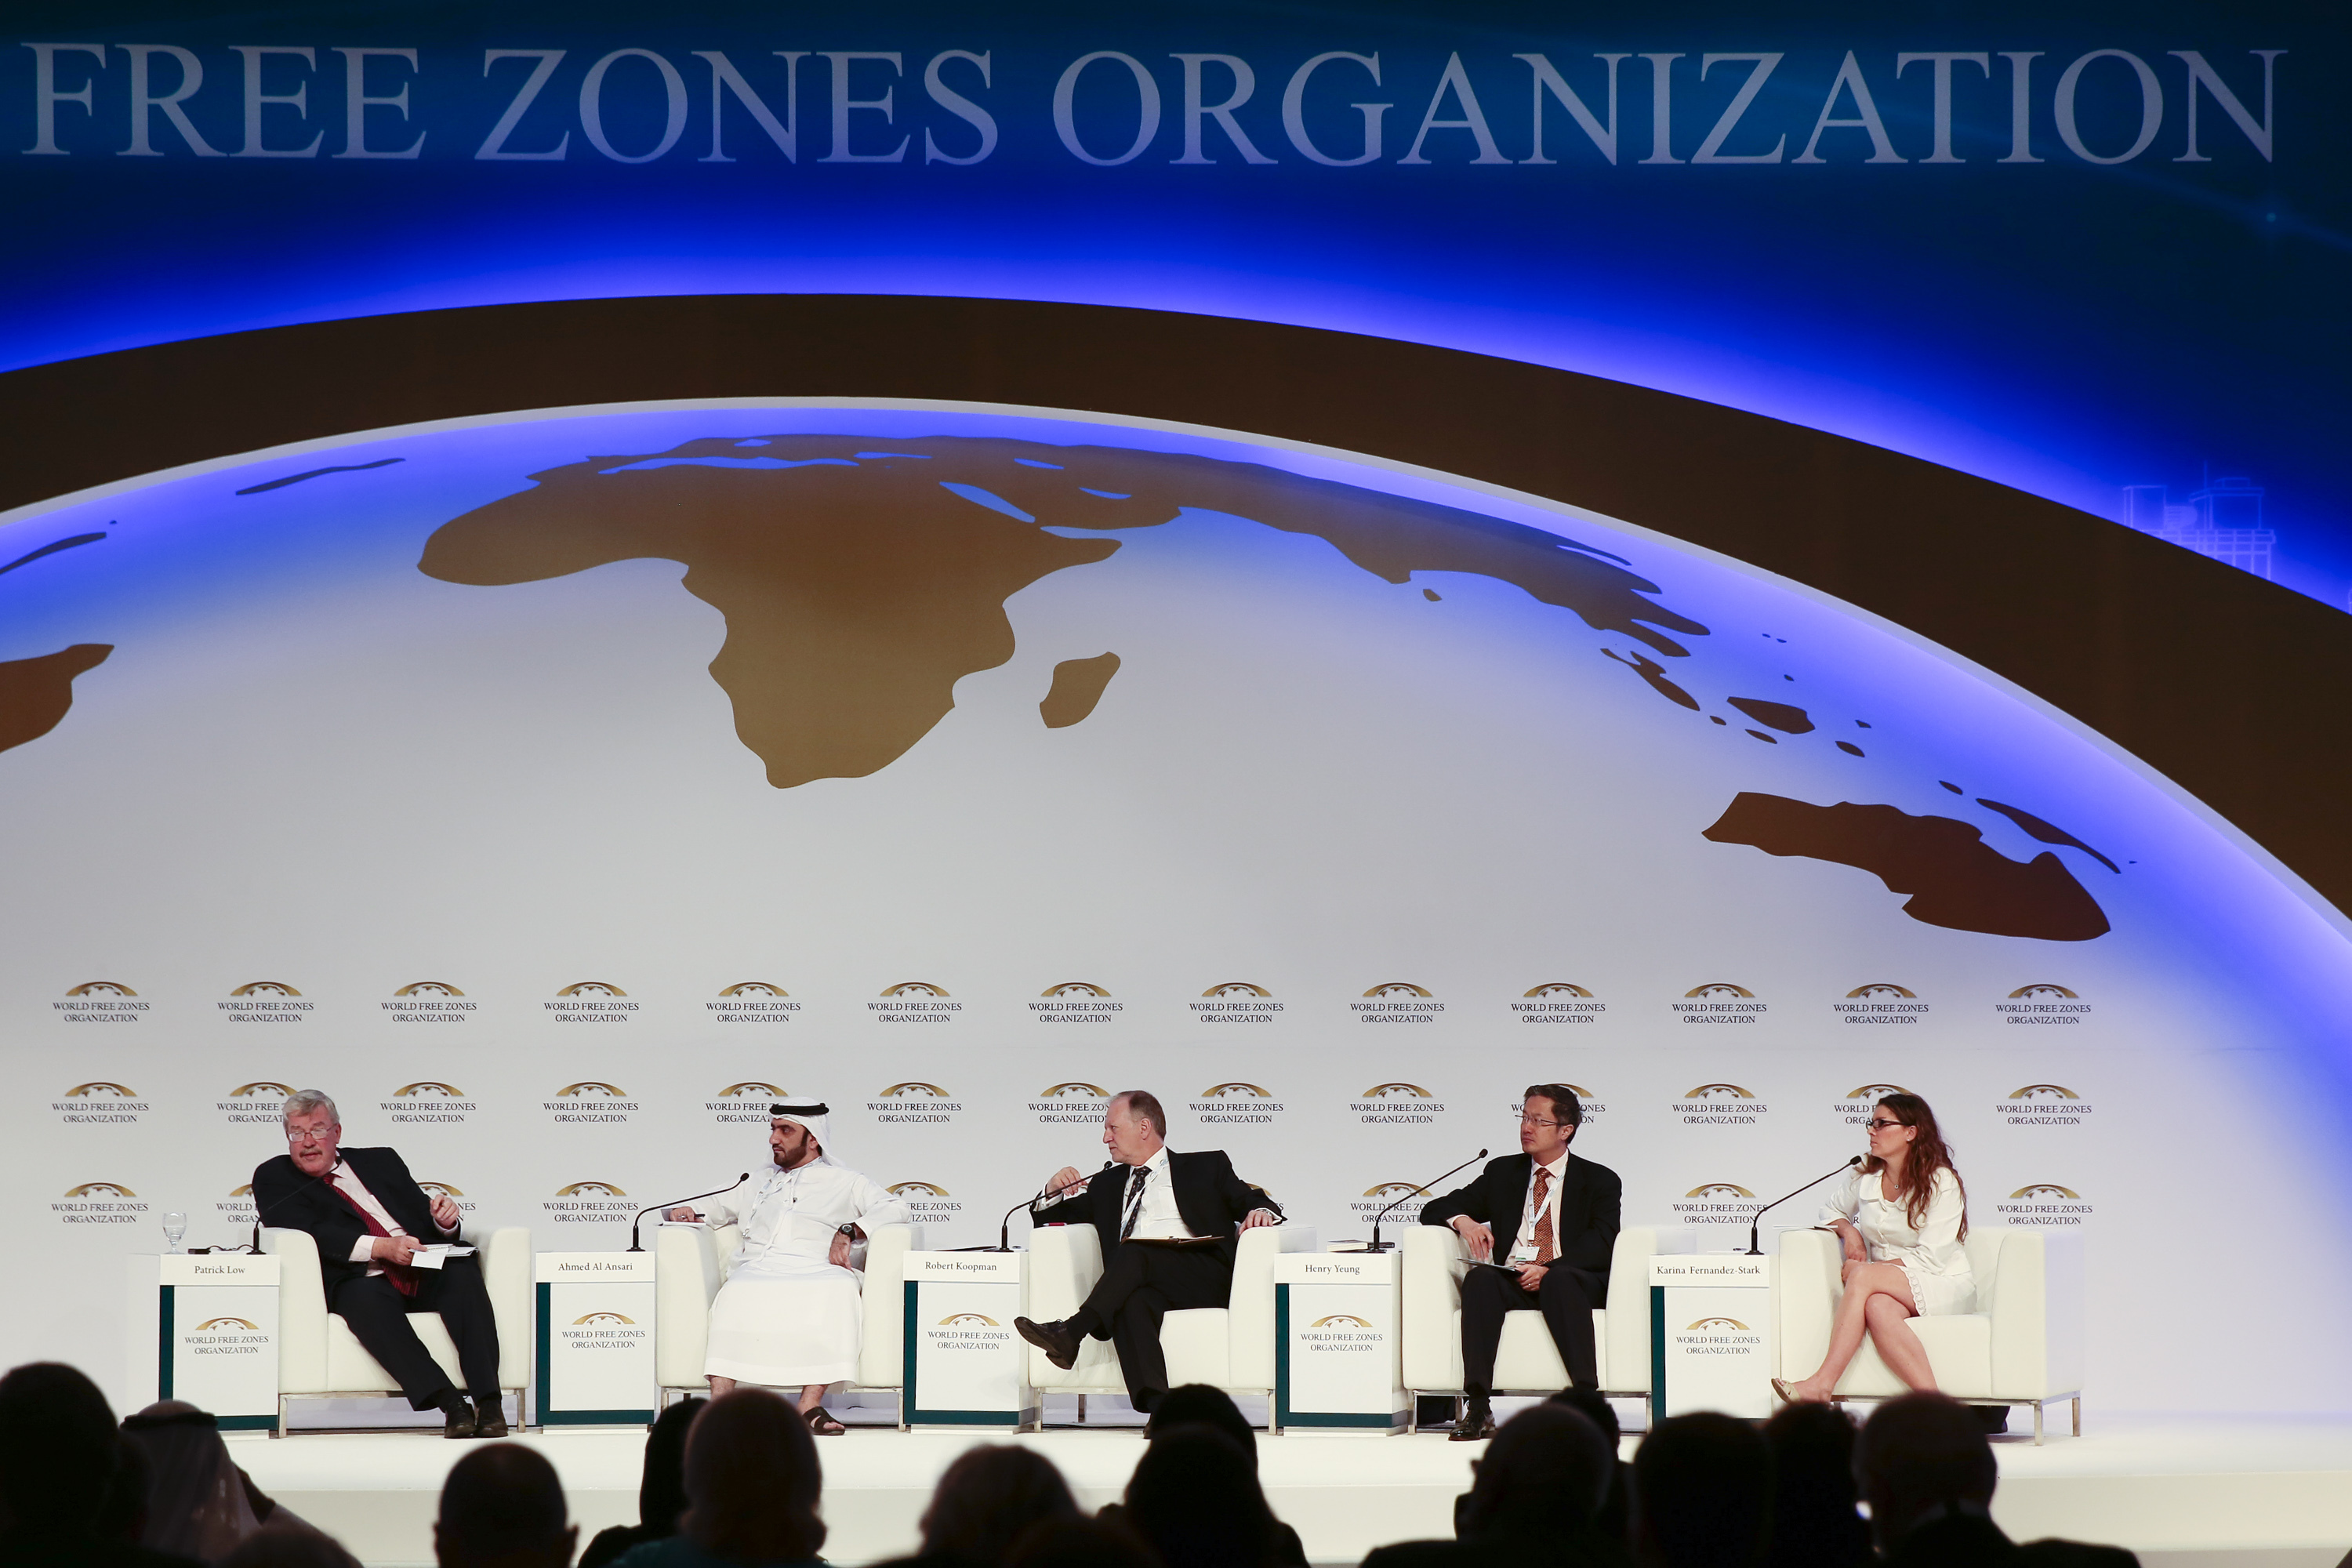 UAE can set 'example' for global free zones